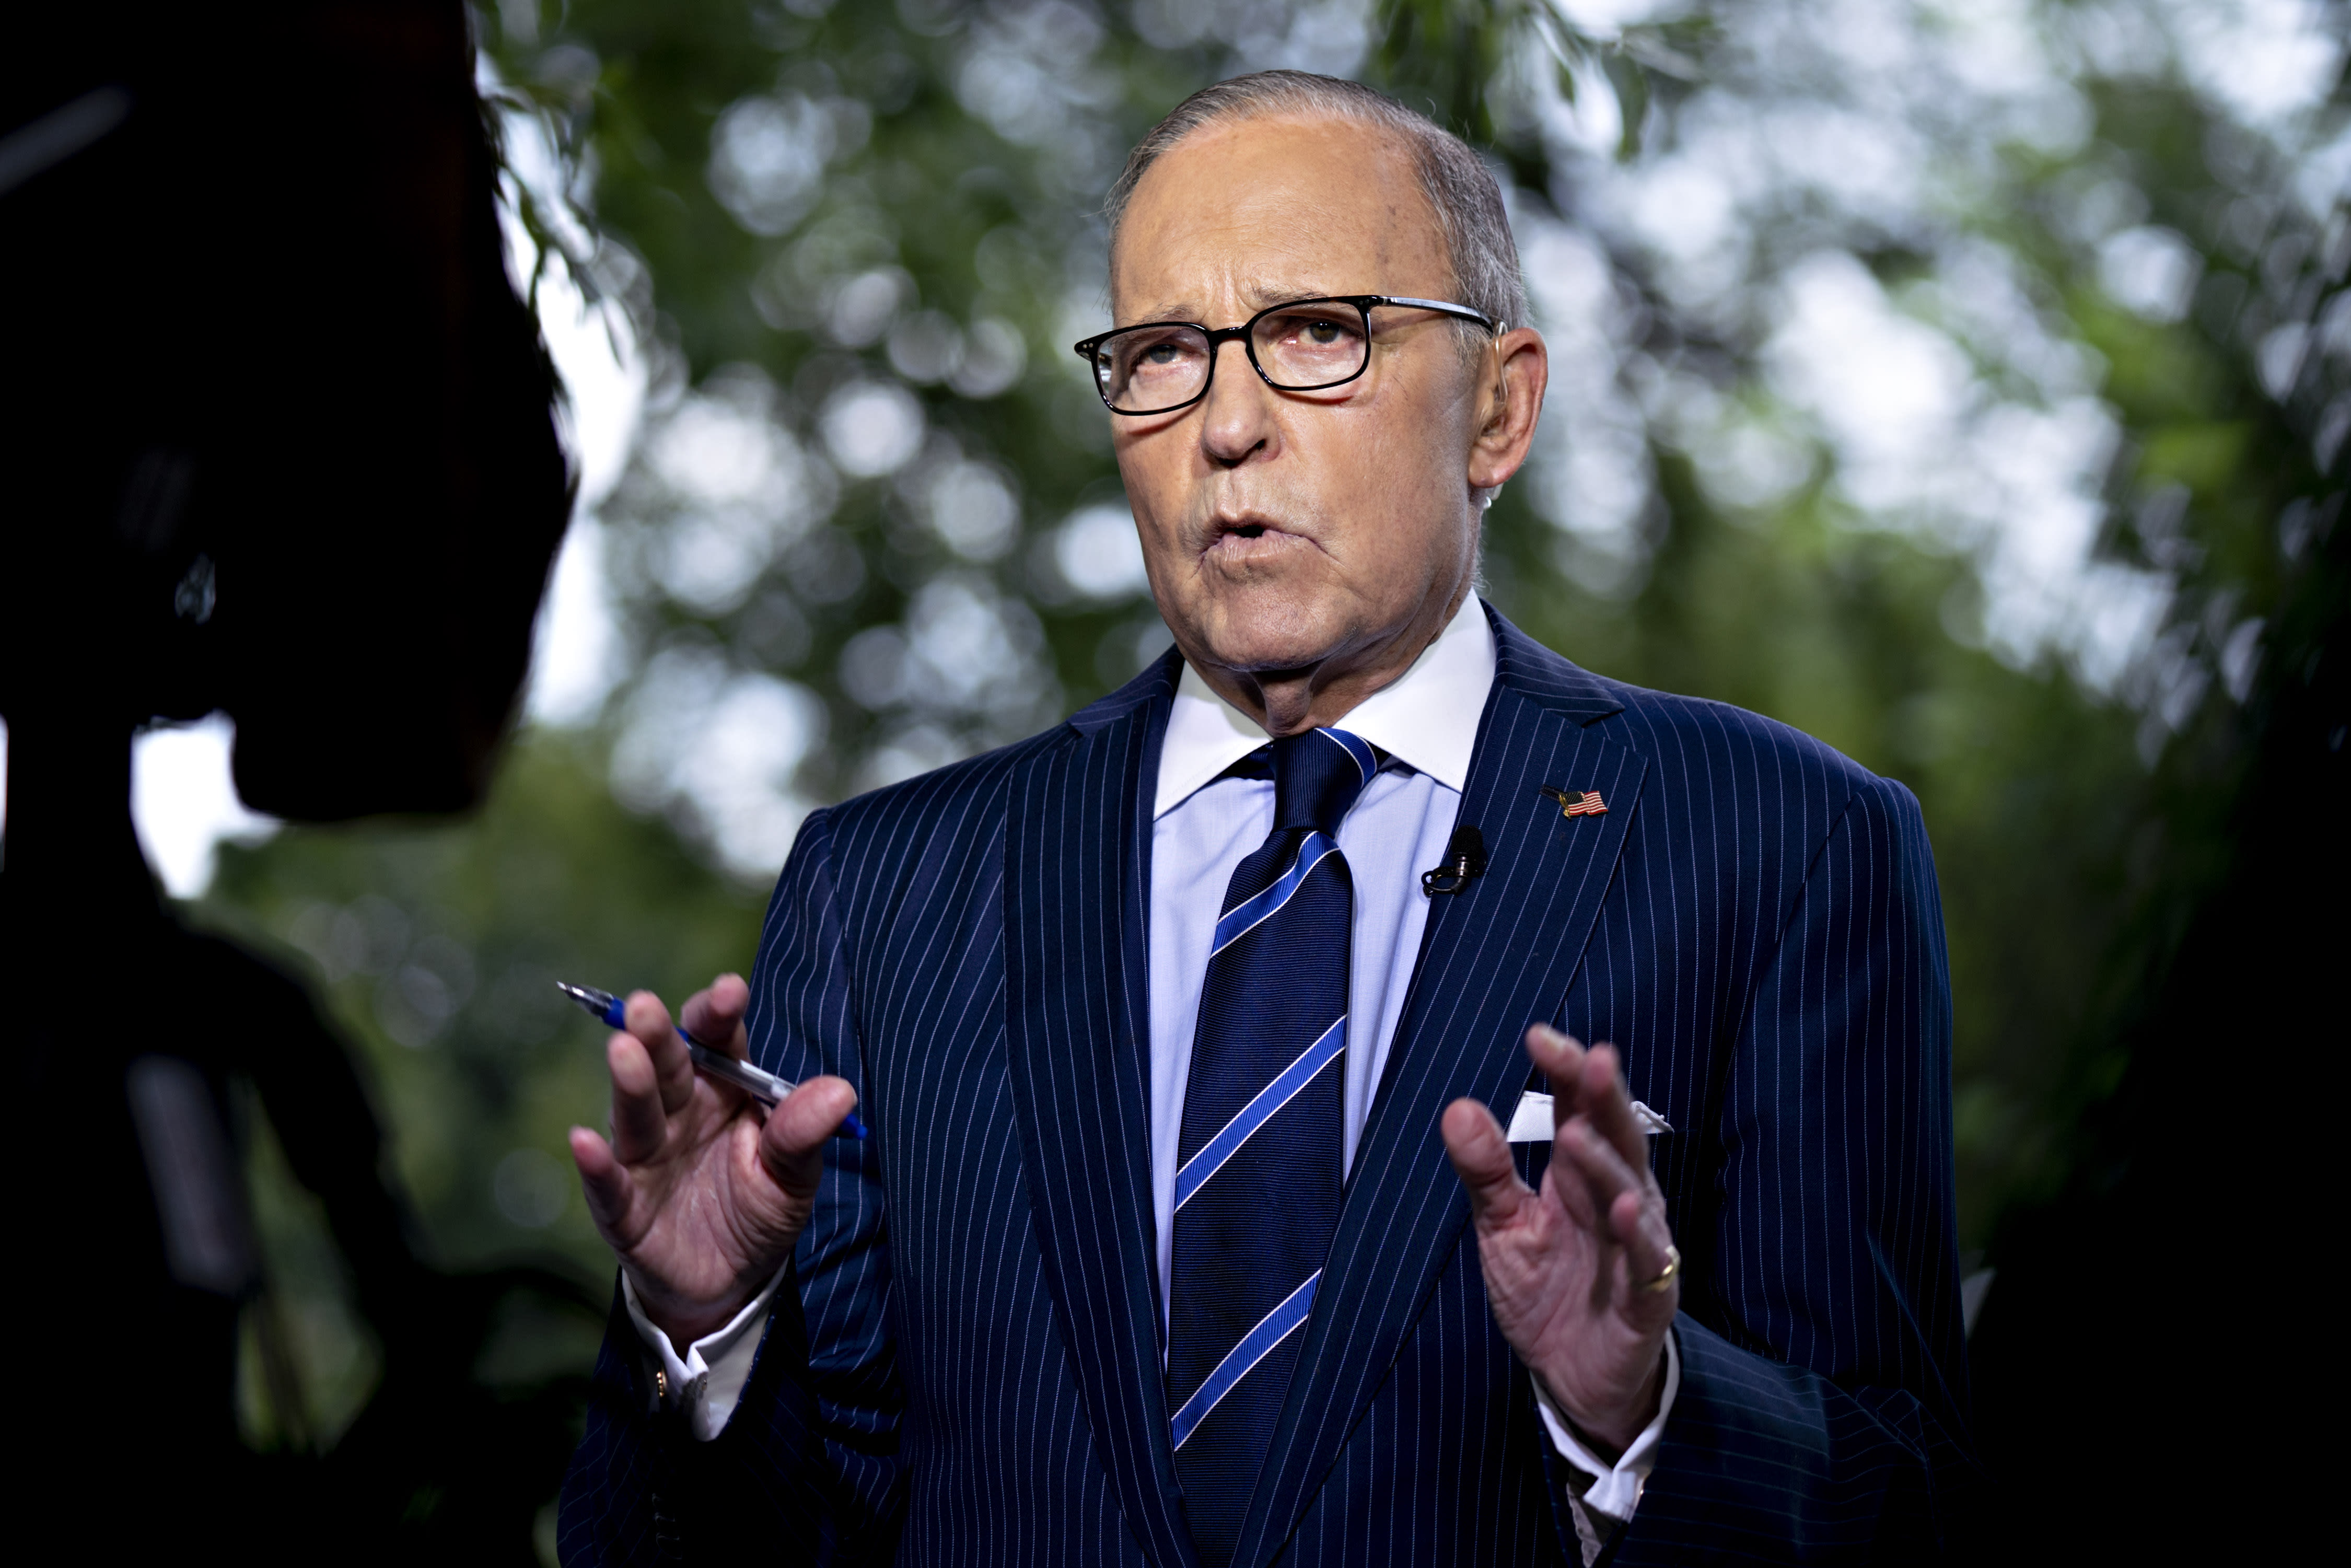 Larry Kudlow says recent call with China on trade 'went very well'